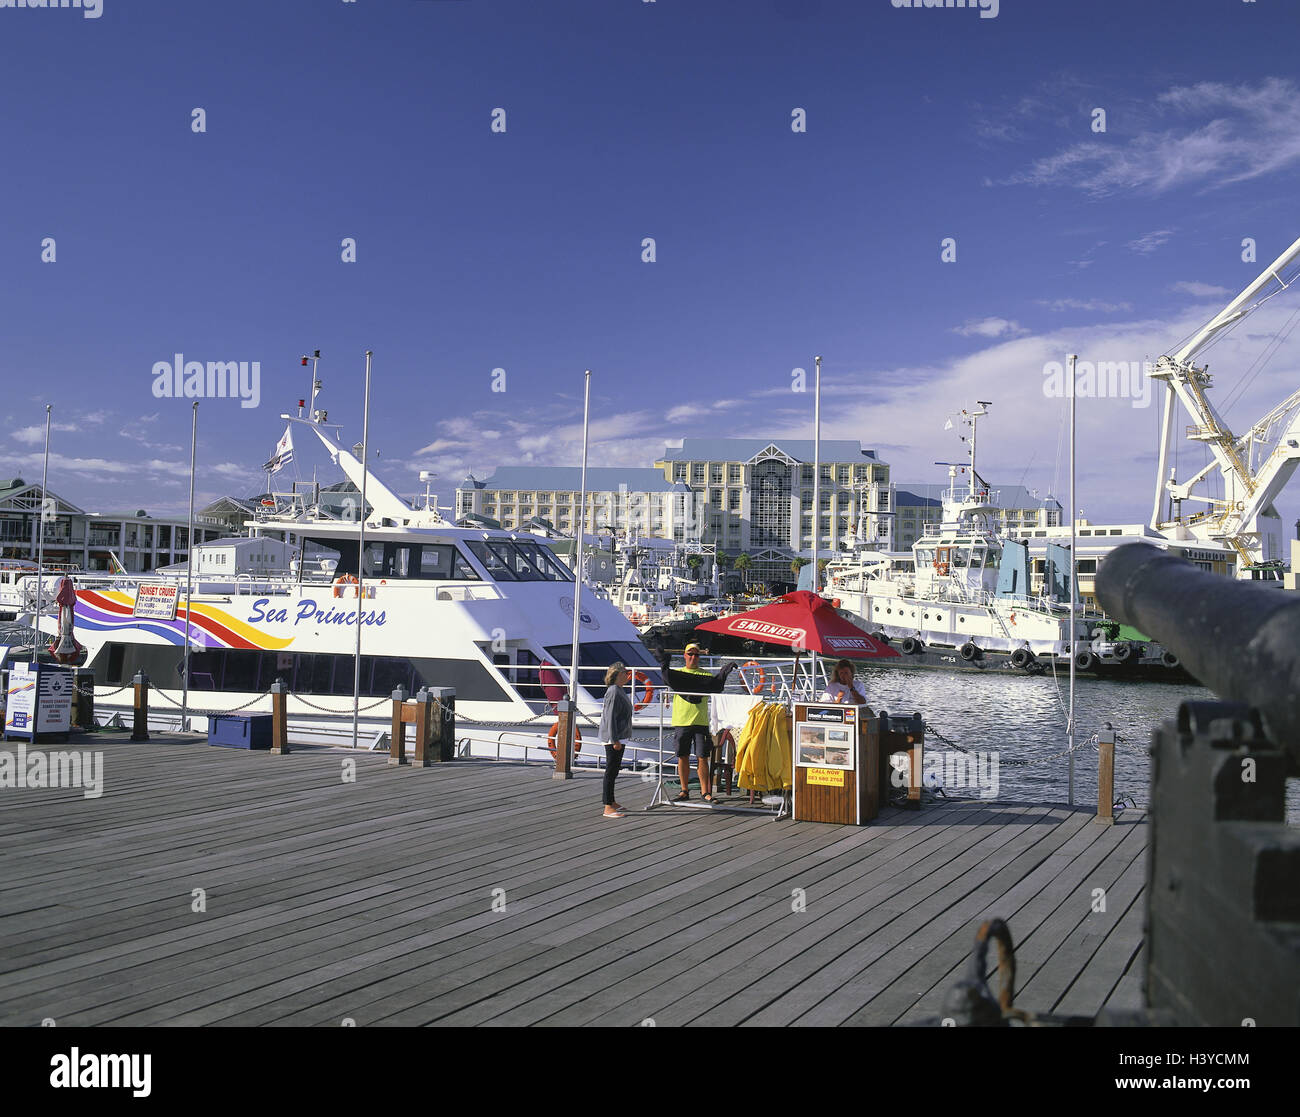 South, Africa, Capetown, harbour, Victoria & Alfred Waterfront, ships, Africa, province, west cape, town, capital, - Stock Image